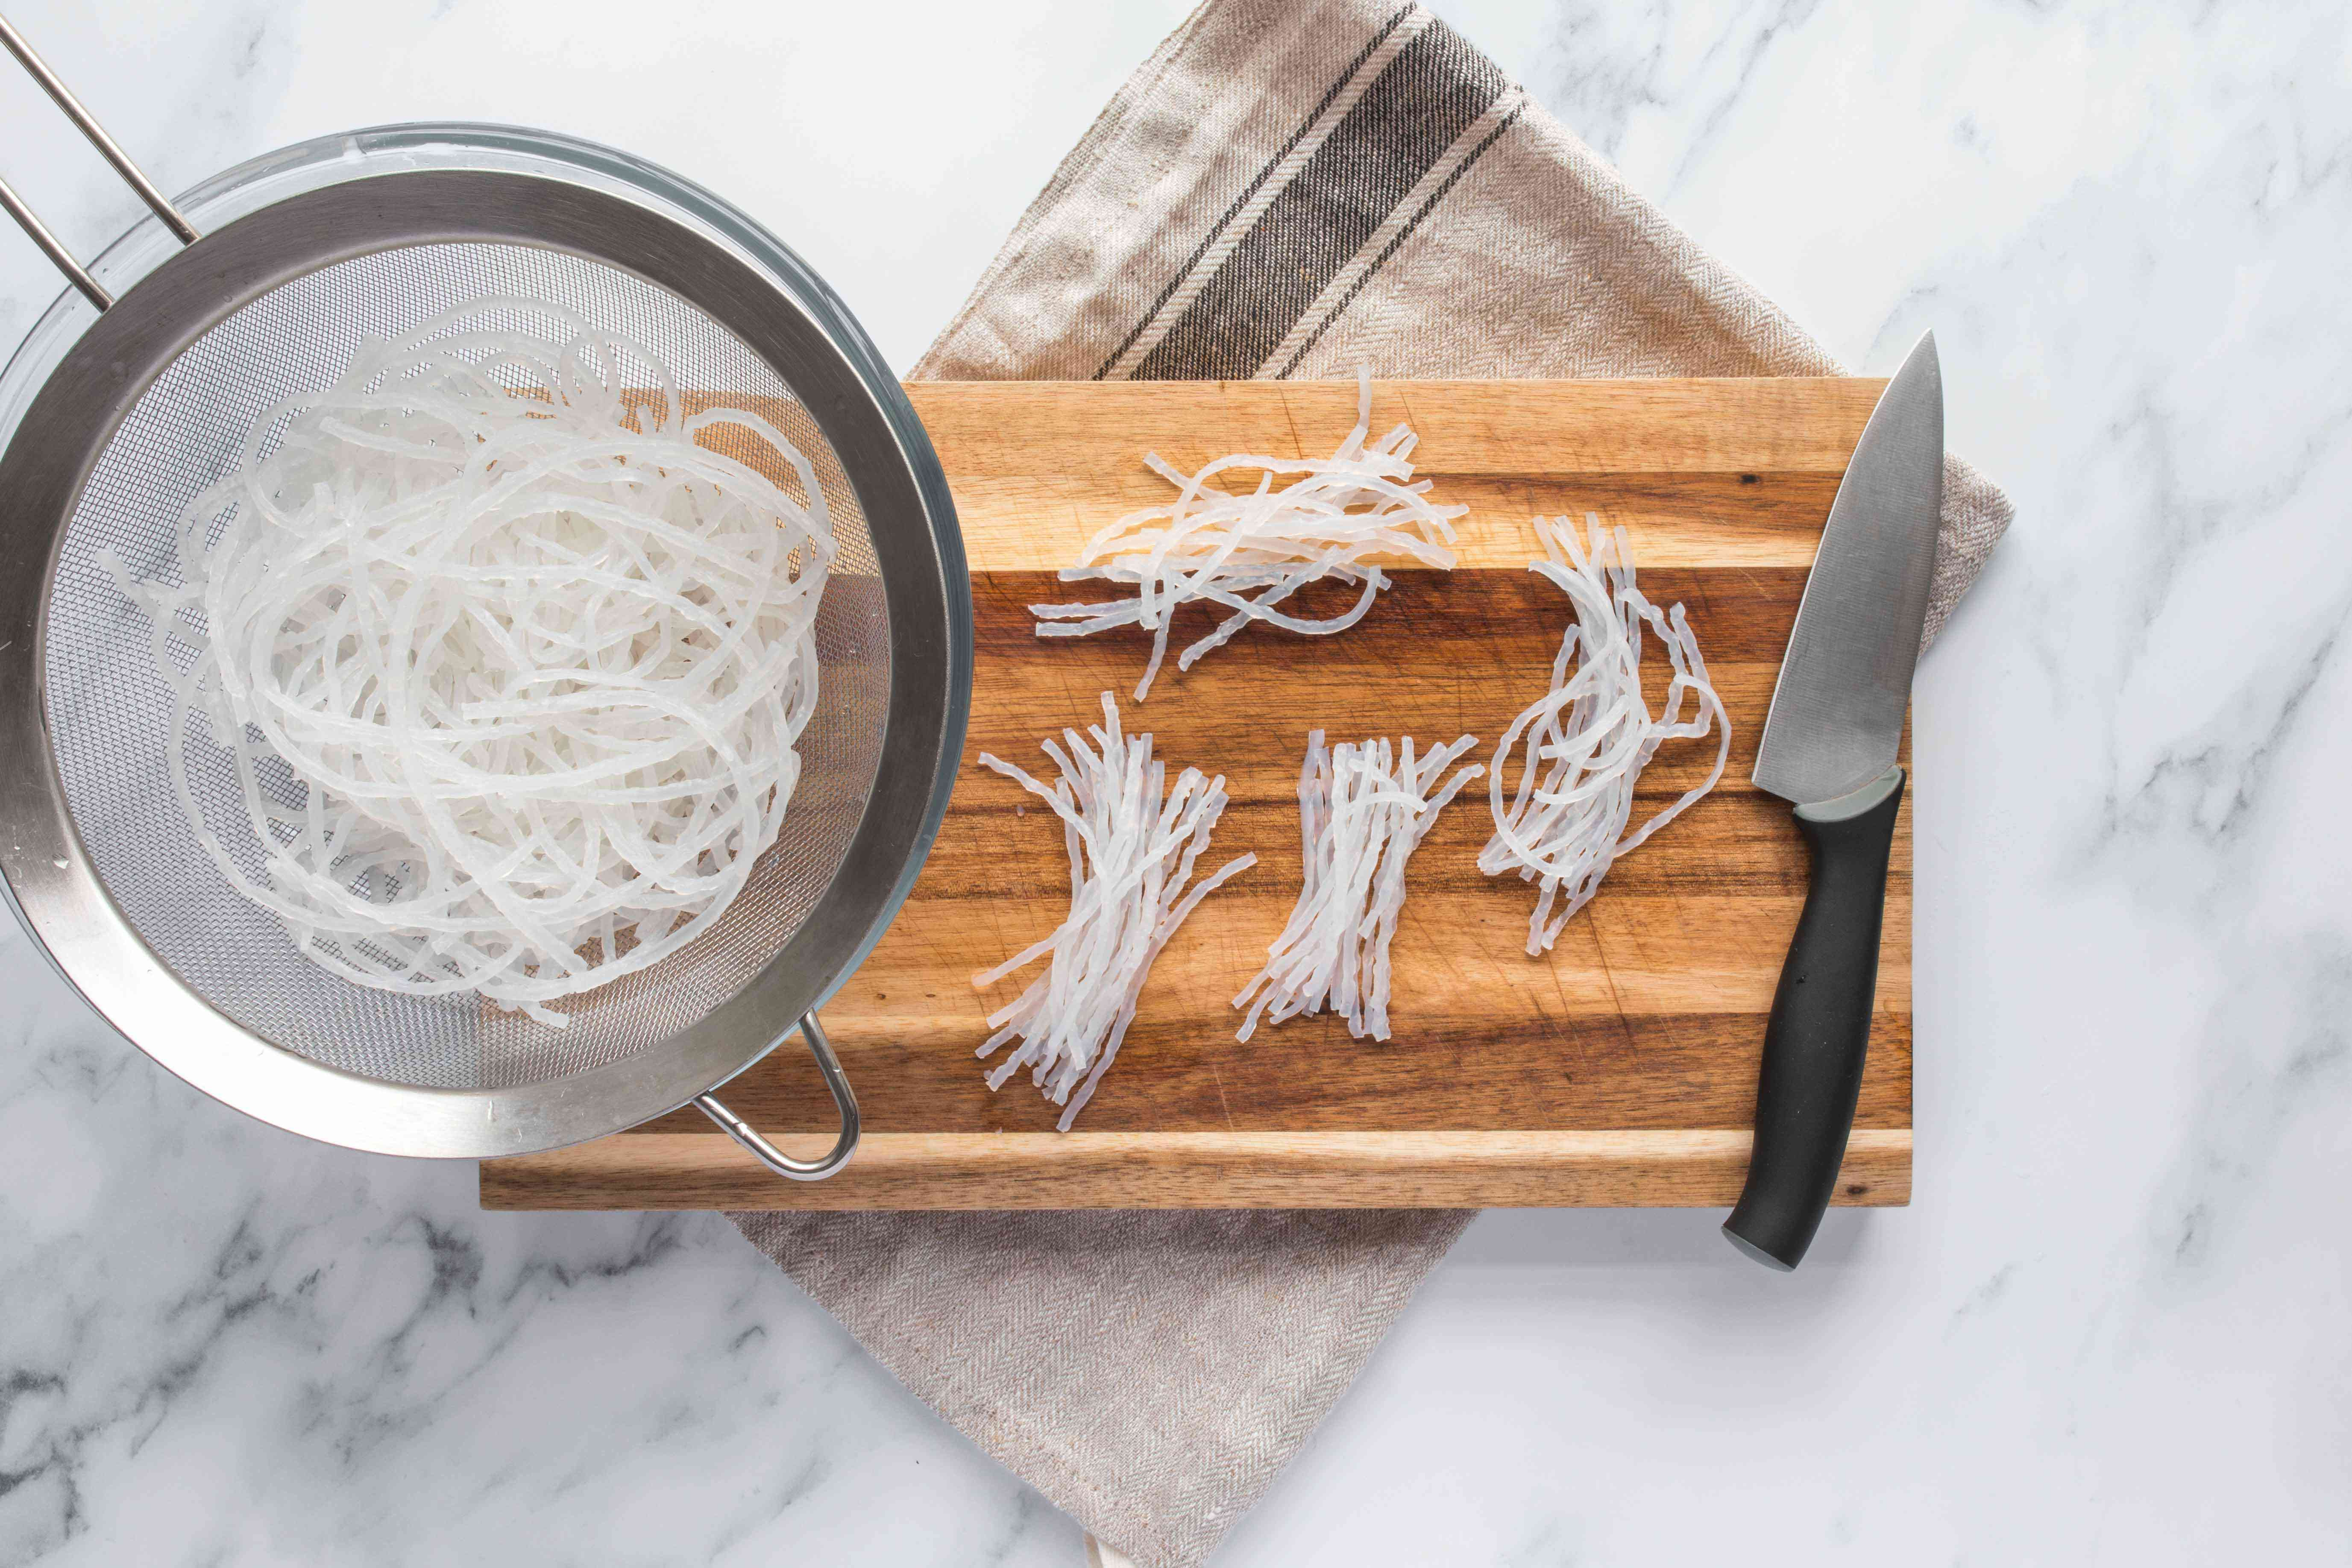 Drained and cut noodles